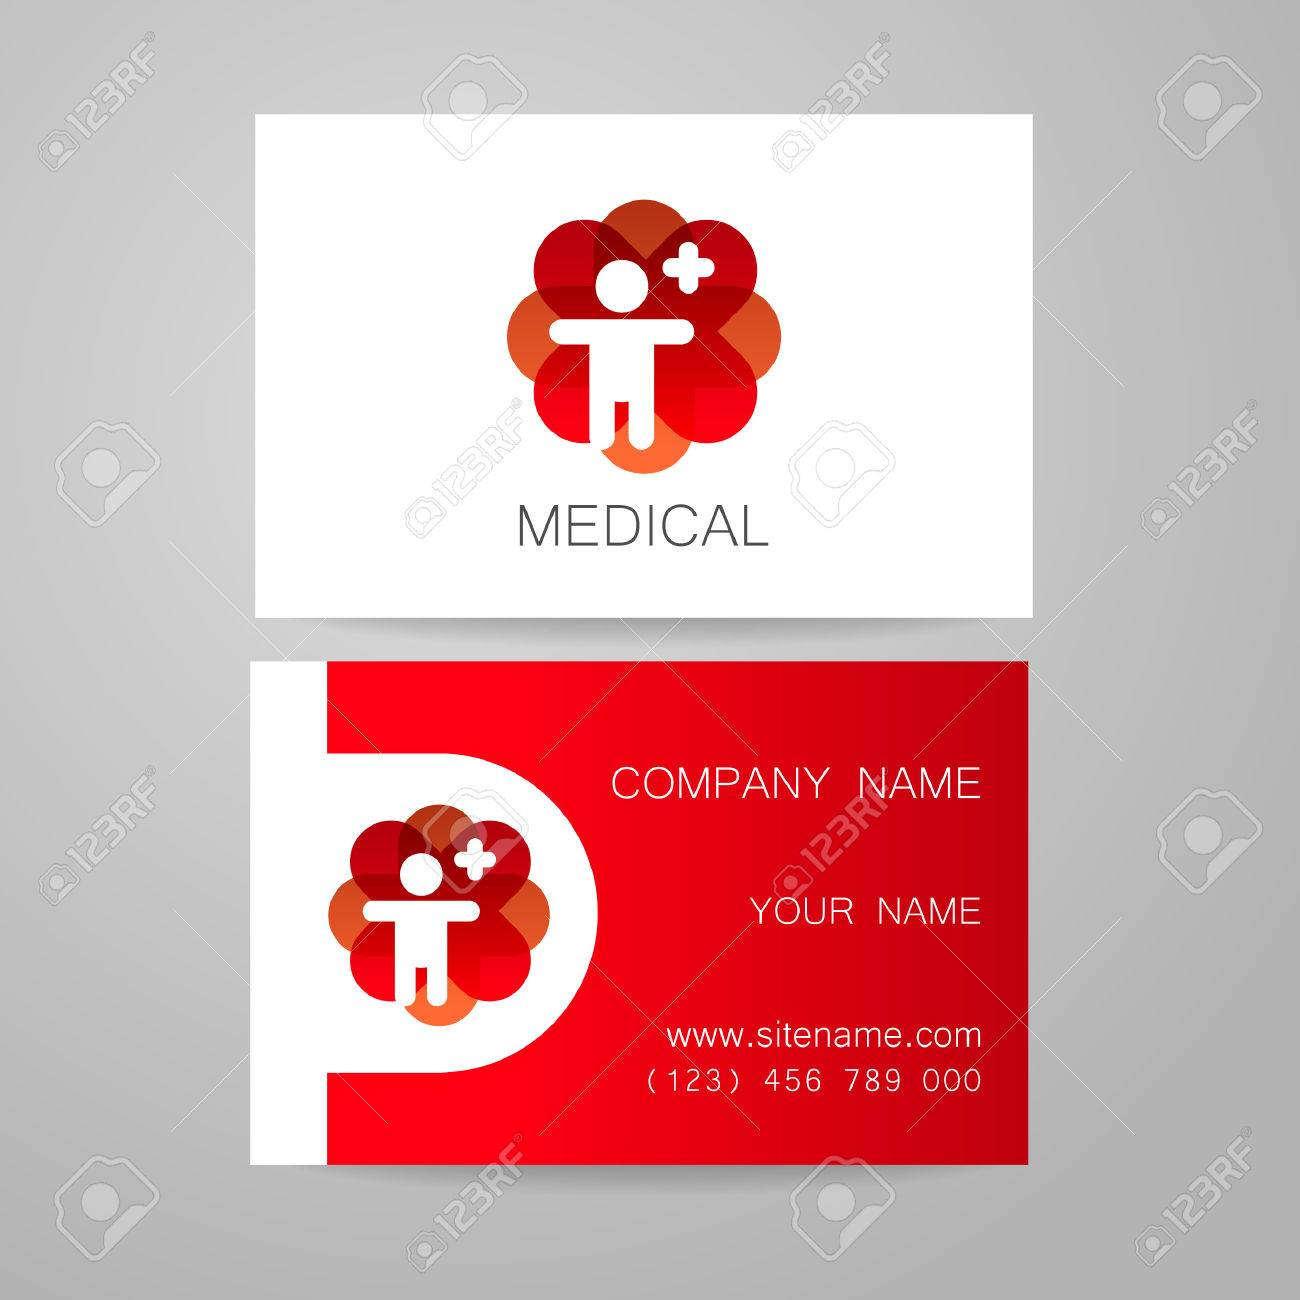 Template of medical business cards royalty free cliparts vectors template of medical business cards stock vector 44650010 accmission Images